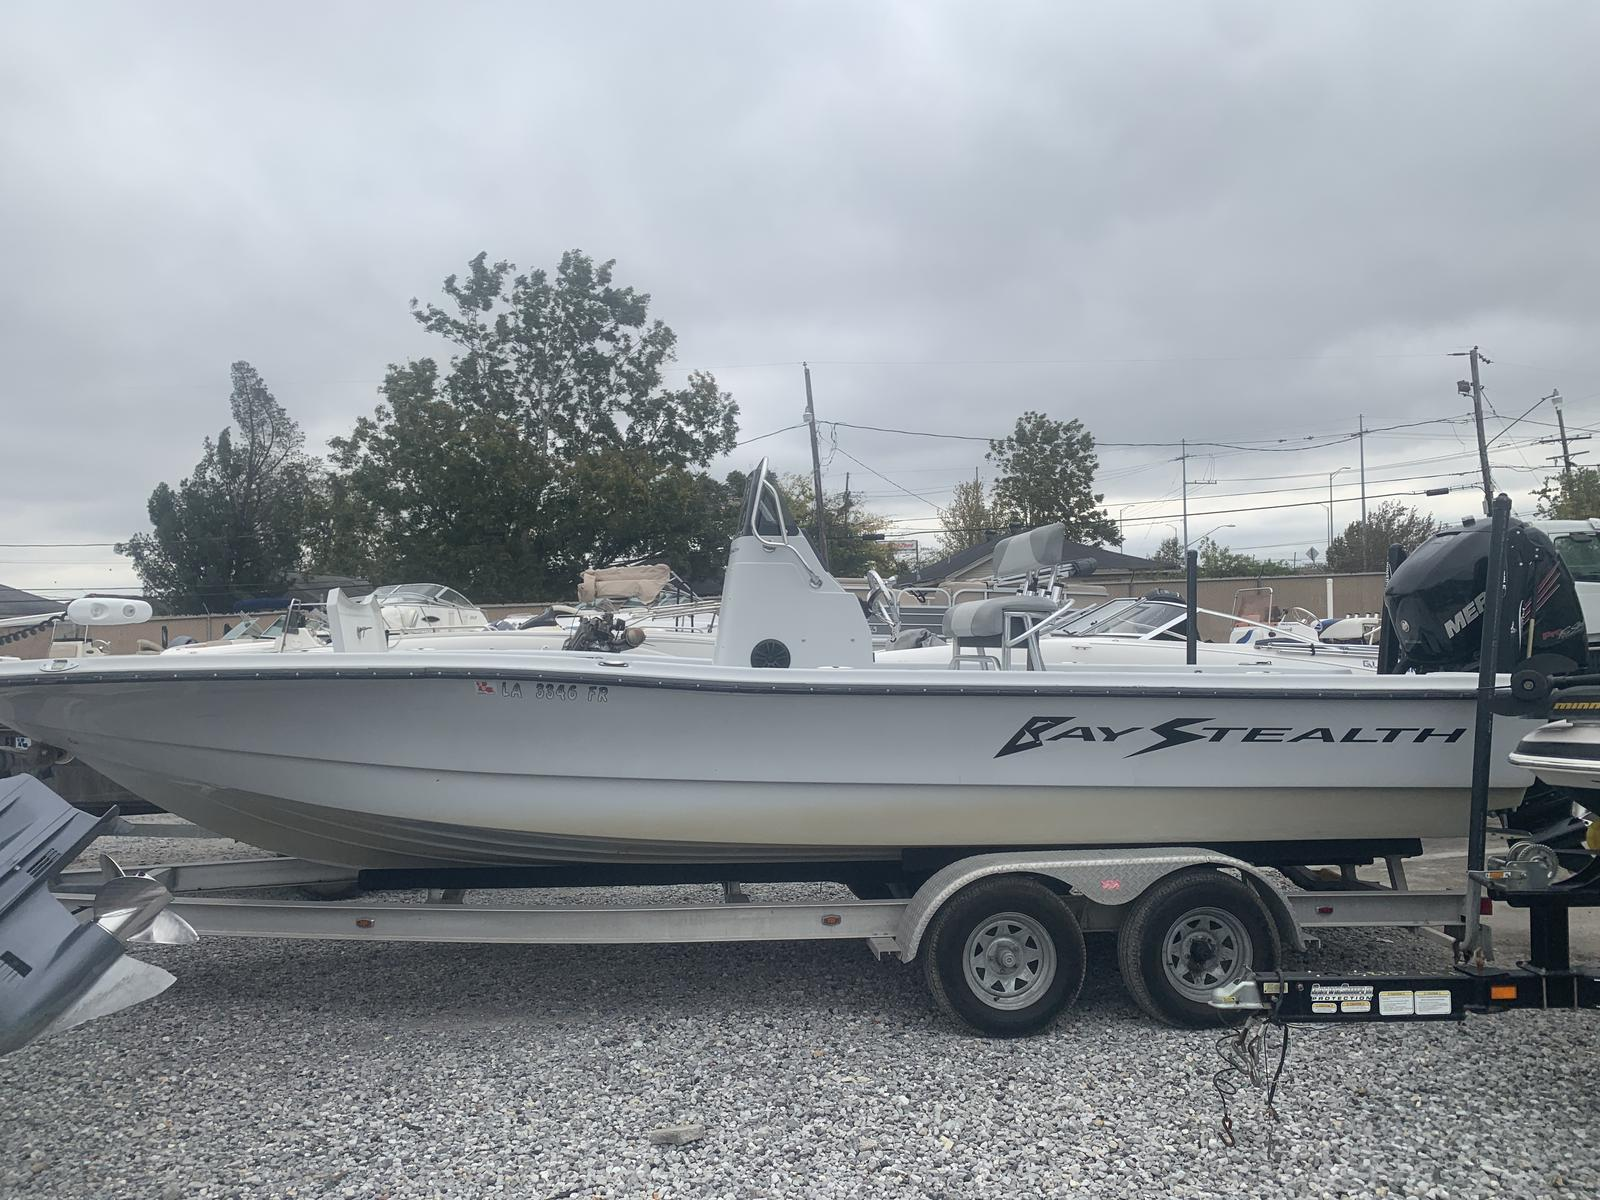 Bay Stealth 24